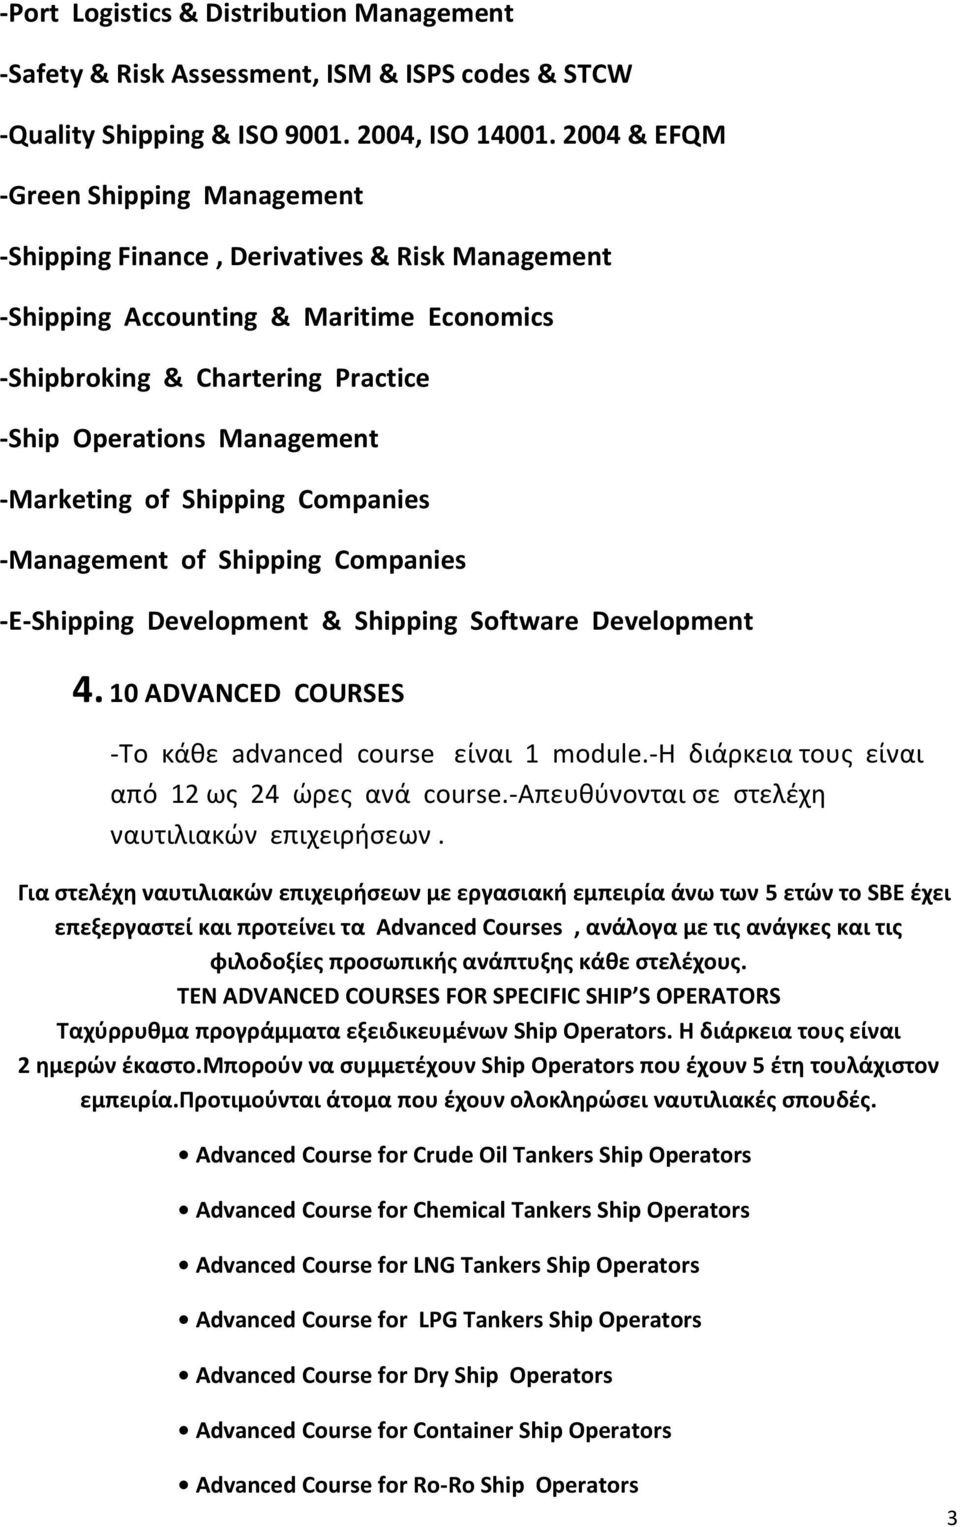 -Marketing of Shipping Companies -Management of Shipping Companies -E-Shipping Development & Shipping Software Development 4. 10 ADVANCED COURSES -To κάθε advanced course είναι 1 module.